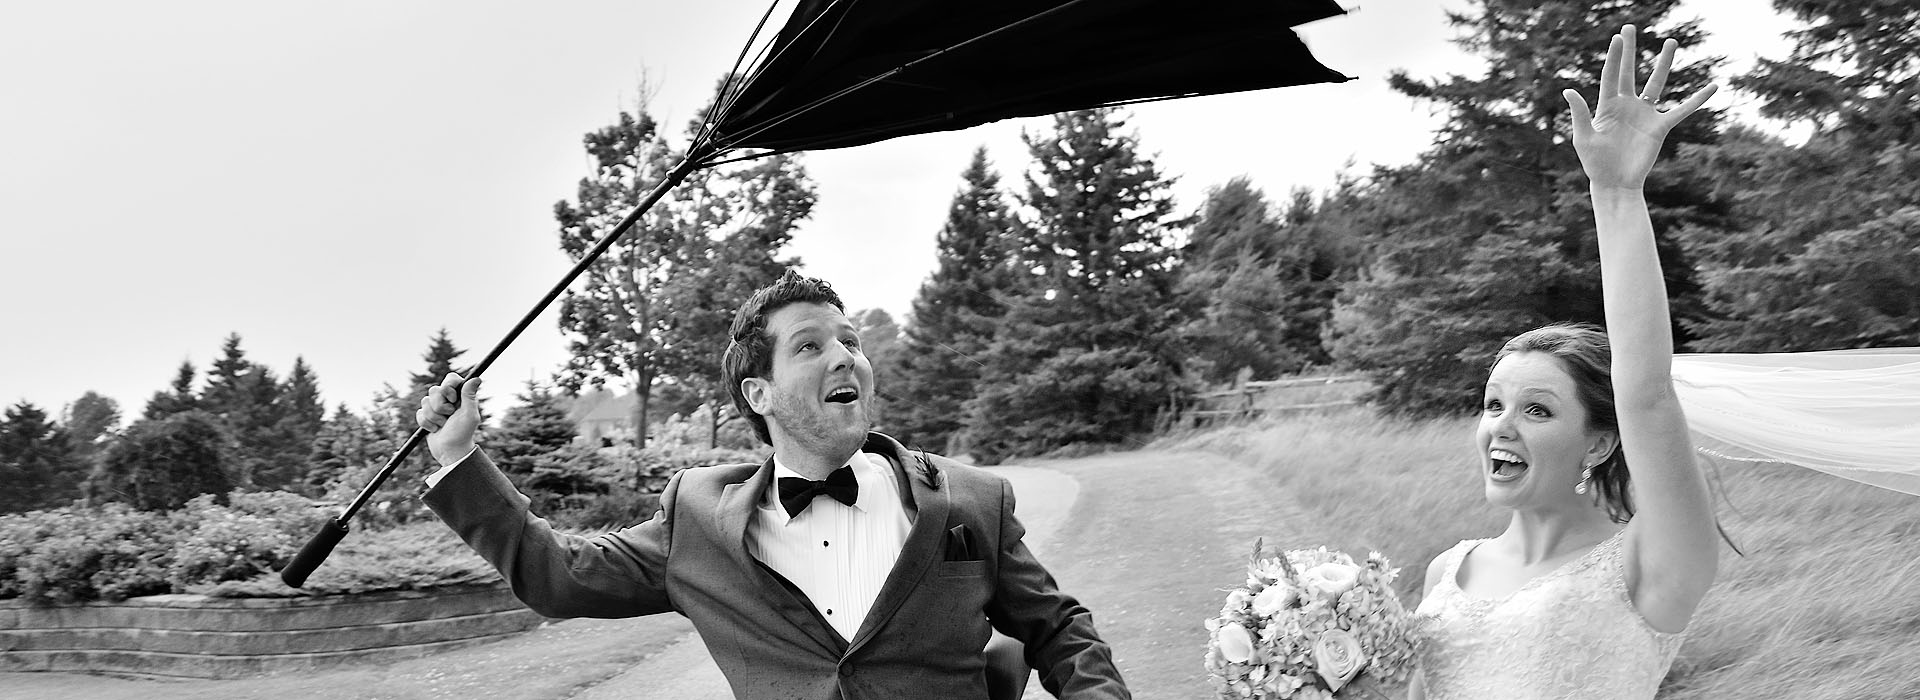 August Gale Inverts Groom's umbrella during photo shoot